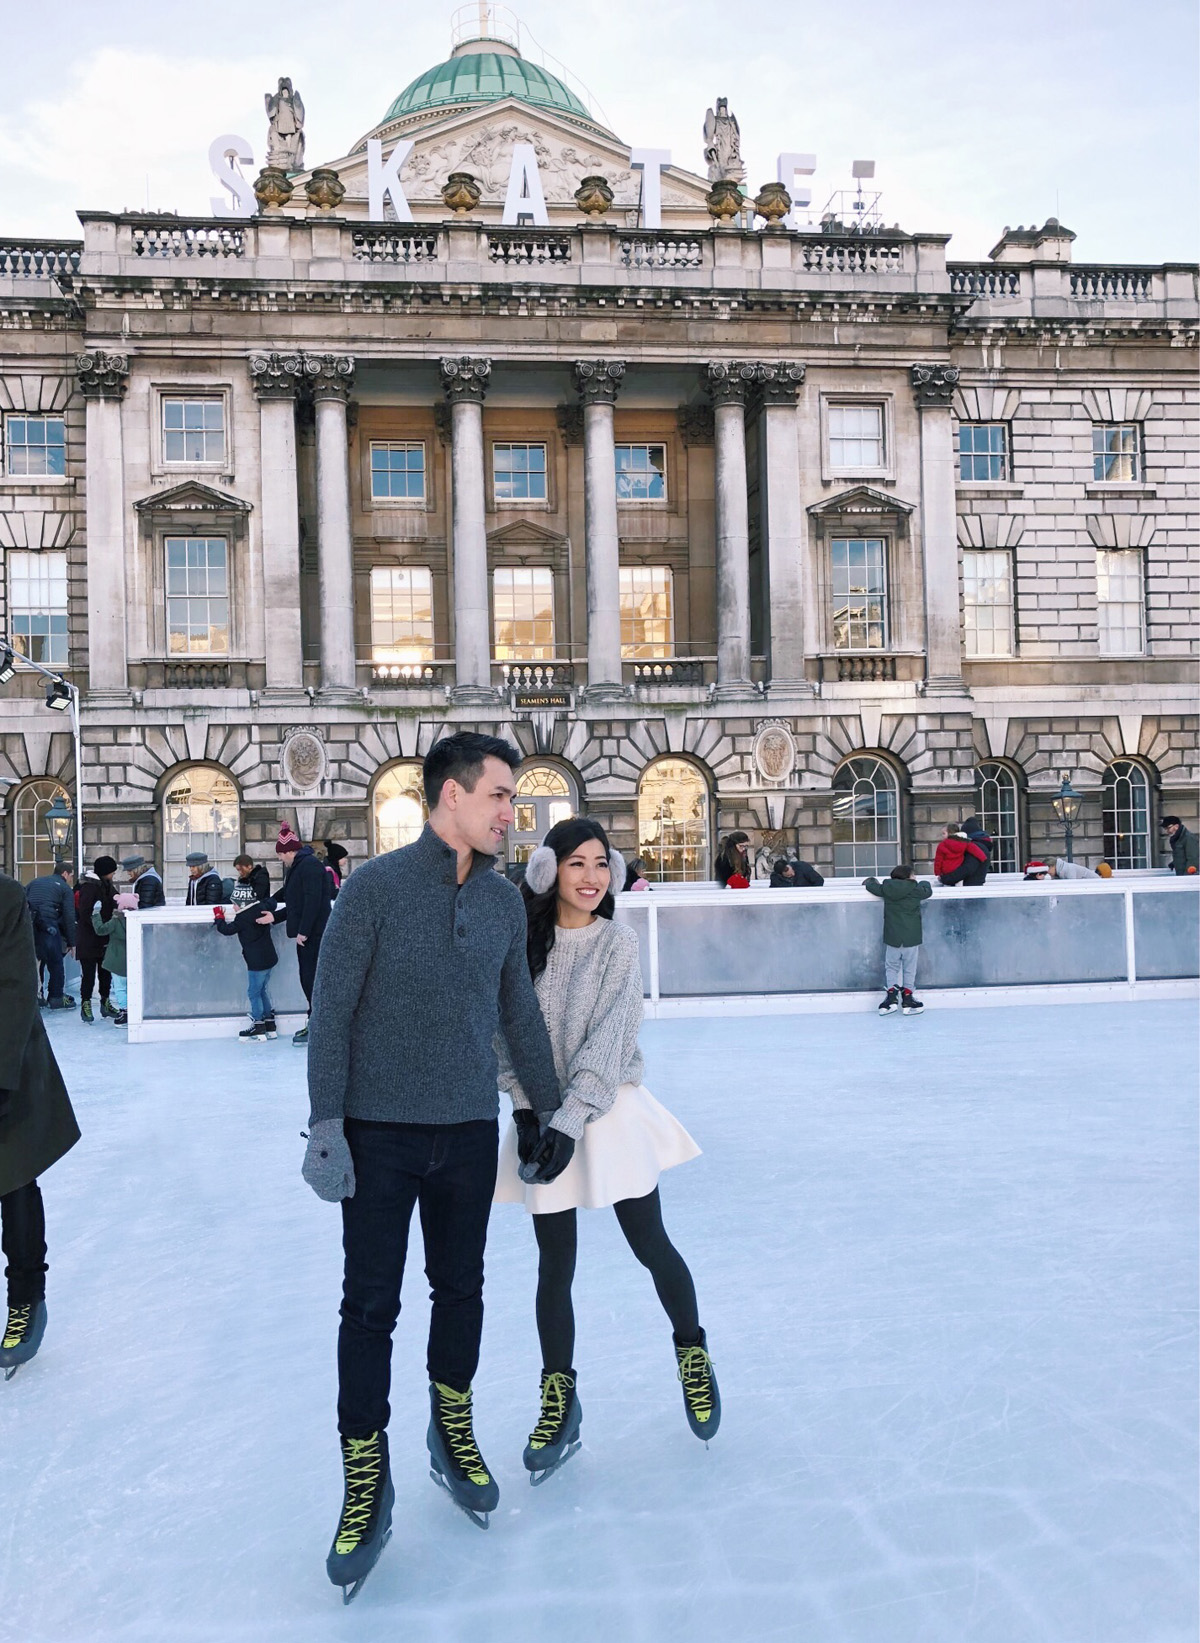 somerset house london ice skating romantic couple activity